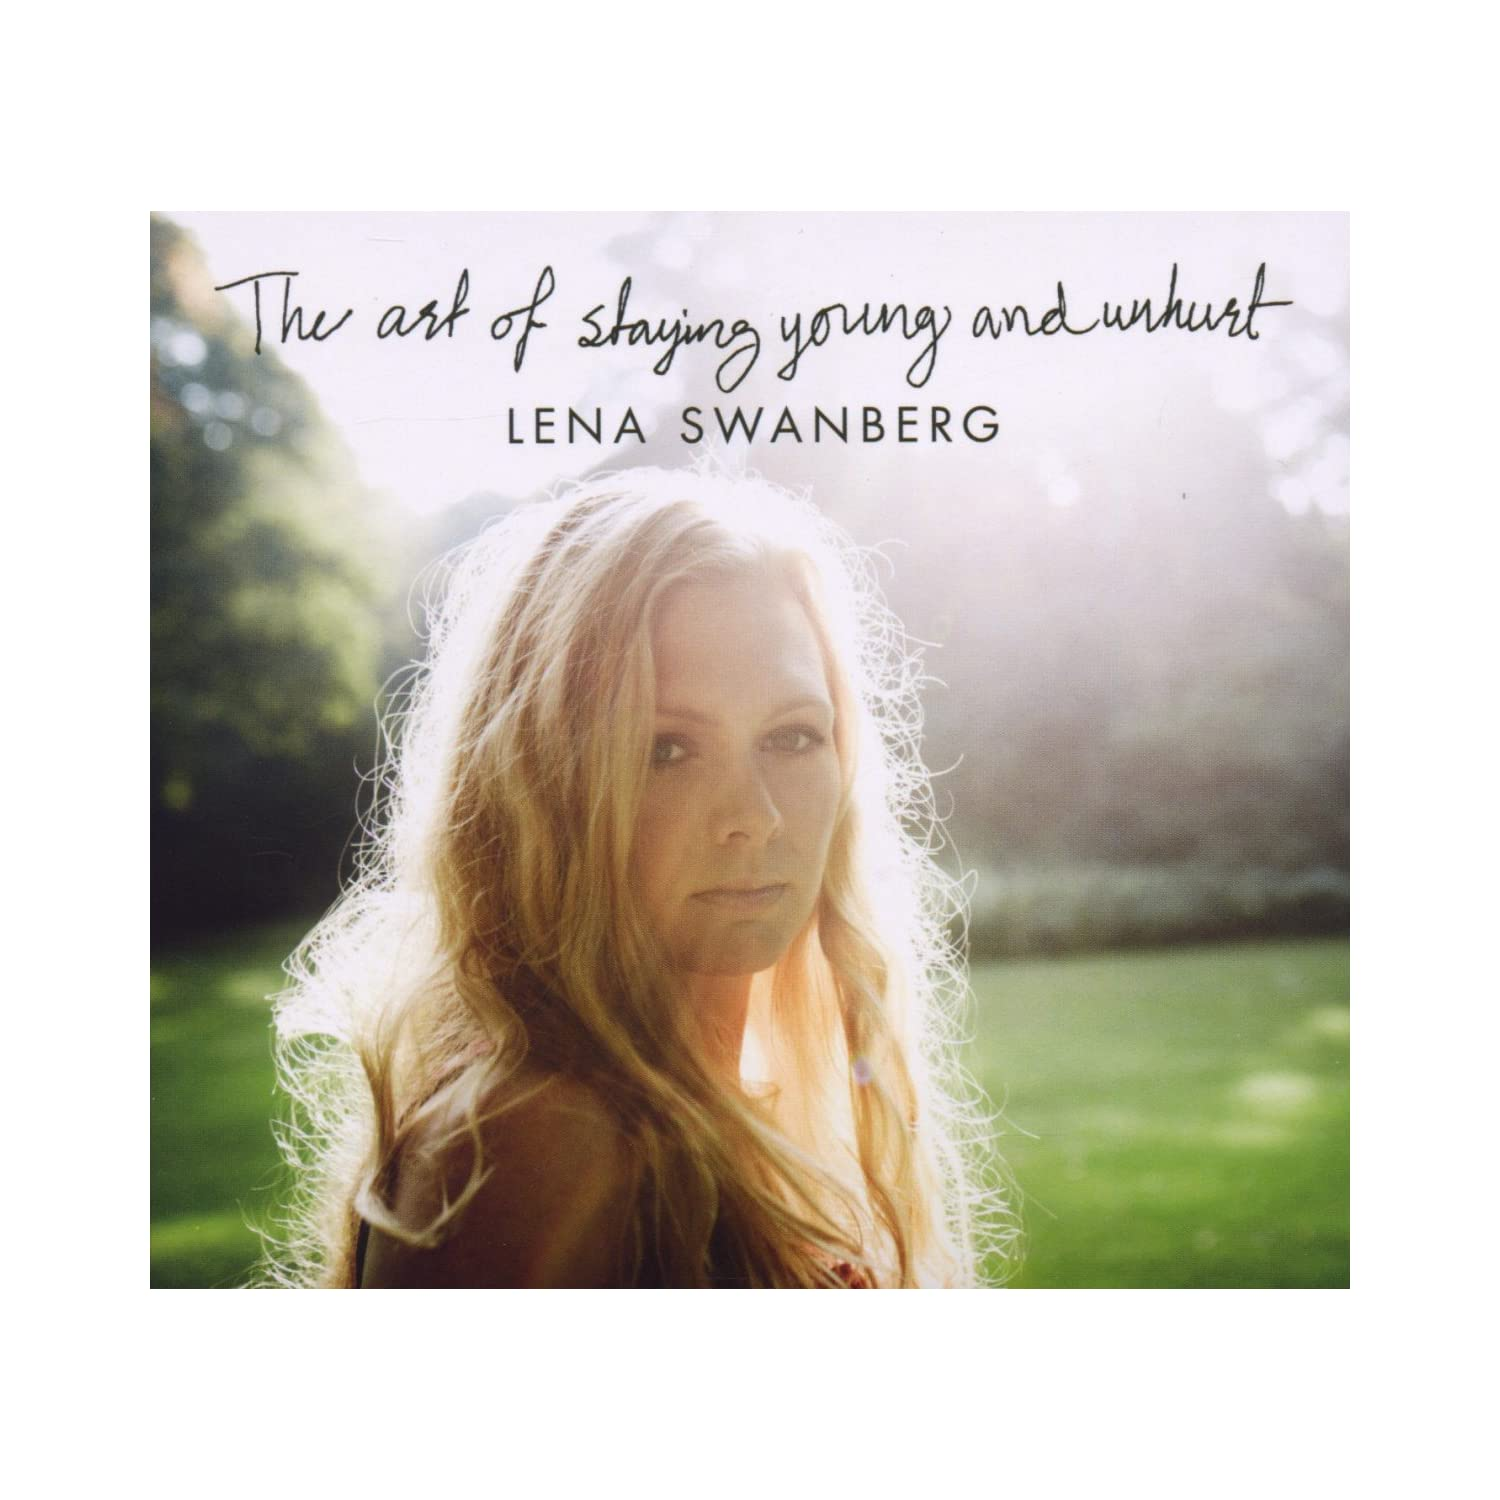 Lena Swanberg - The Art of Staying Young and Unhurt